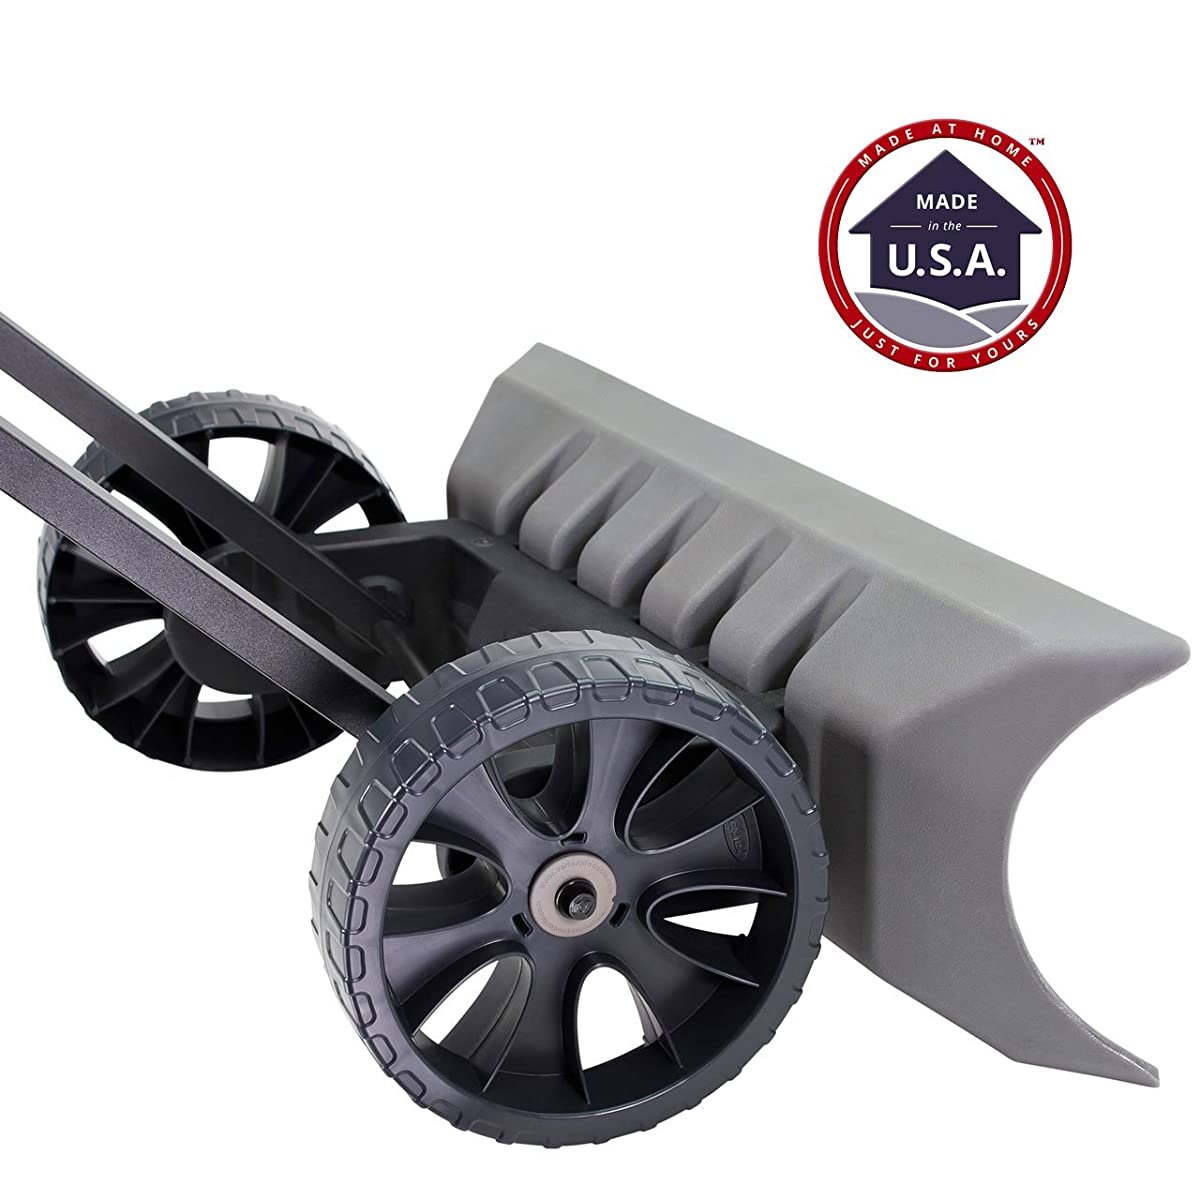 Power Dynamics Easy Leverage 30 Inch SnoDozer Rolling Snow Shovel on Wheels - Made in USA, Ergonomic Snow Clearing Push Plow for Driveways and Sidewalks